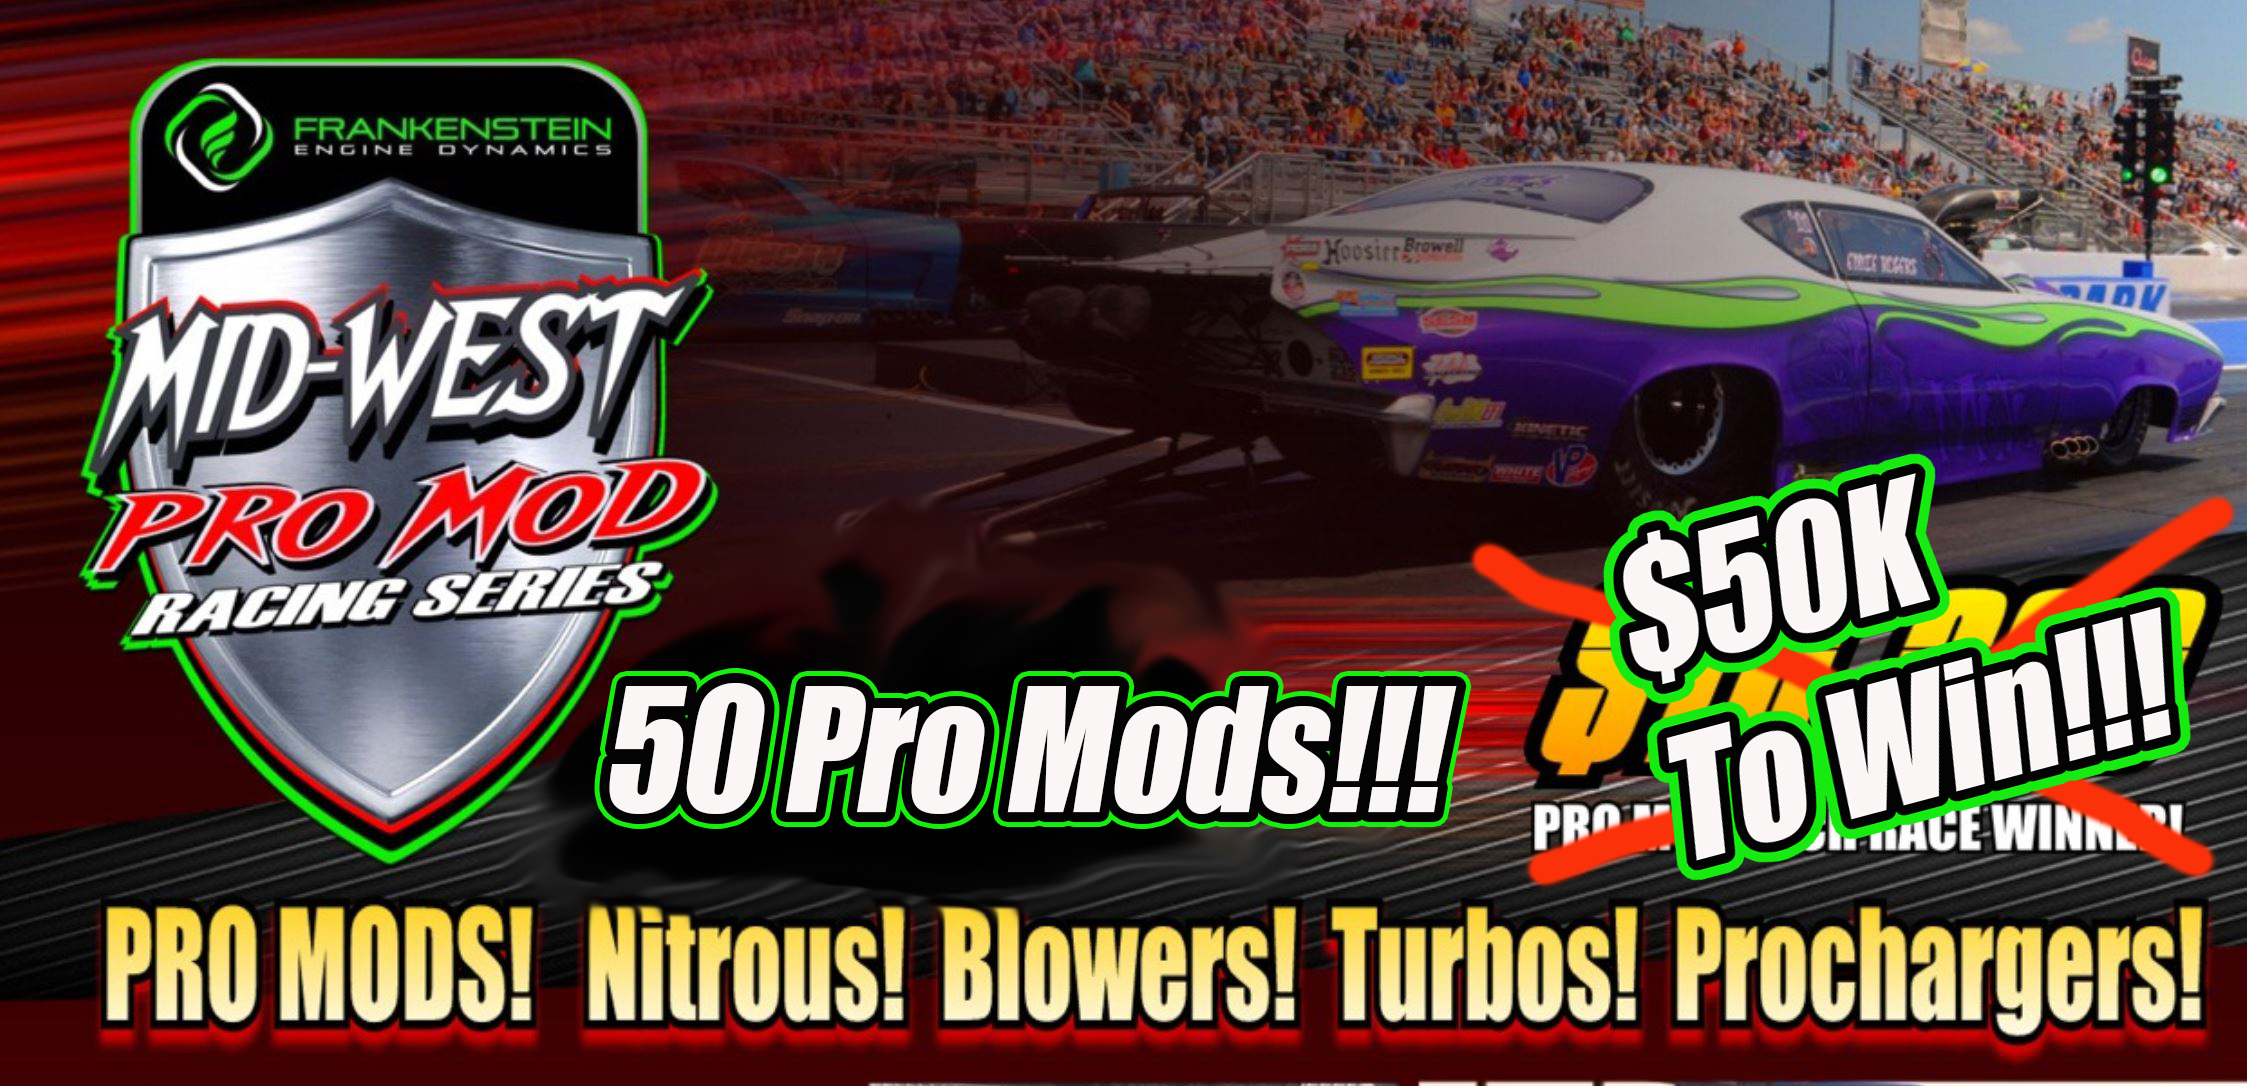 LIVE VIDEO: The Elite 16 $50,000 To Win Pro Mod Race LIVE! $125,000 Total Purse!